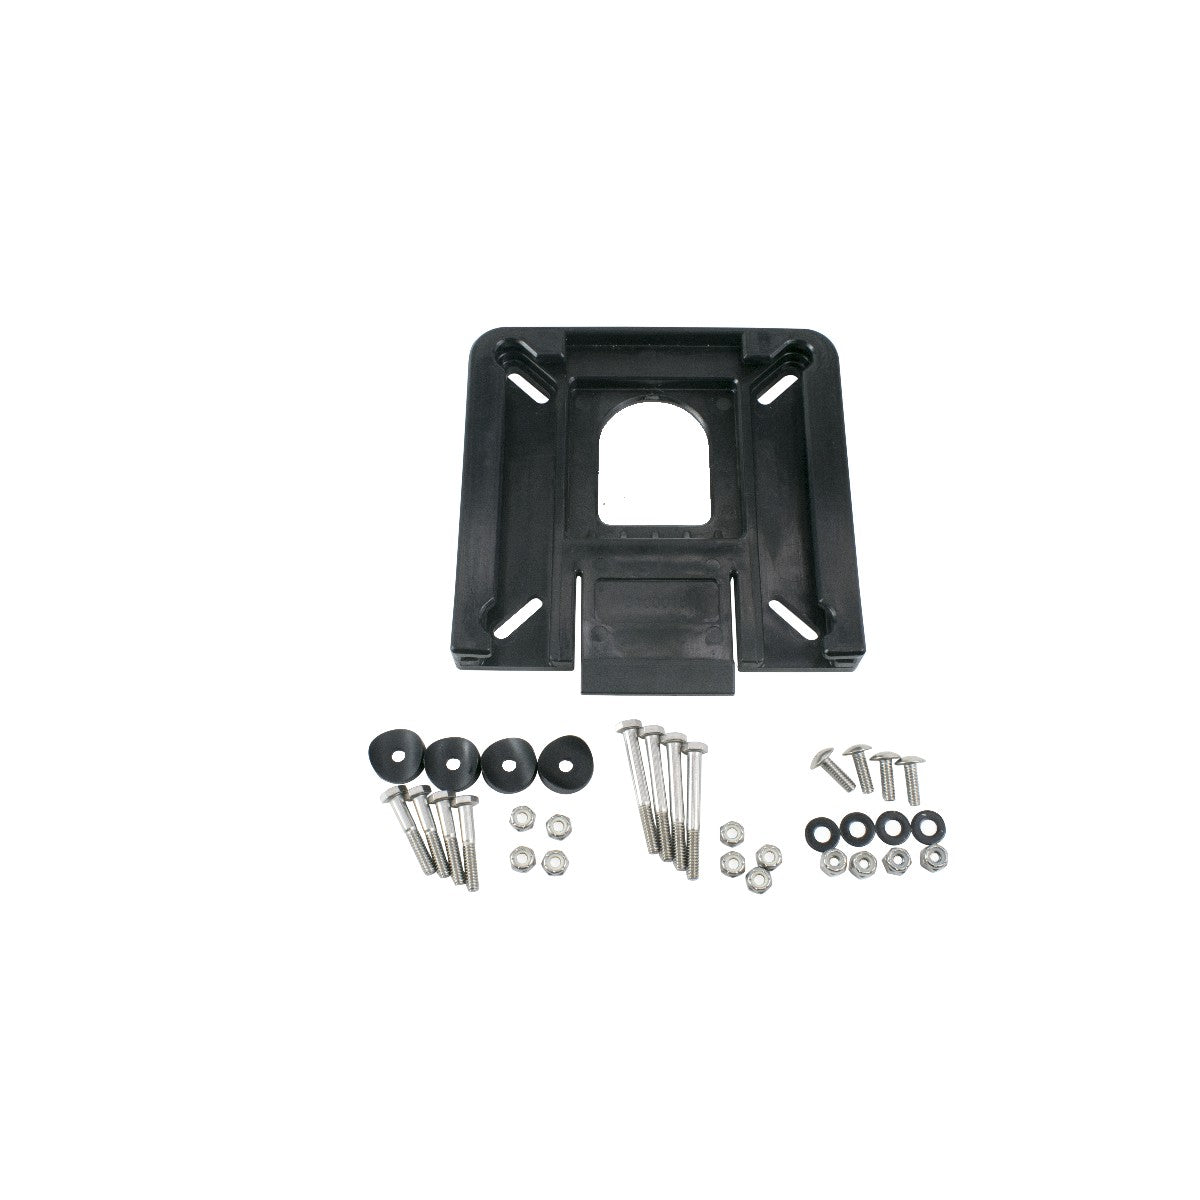 NuCanoe #3312 Quick Release Kit for 360 Kayak Seats - Kayak Creek